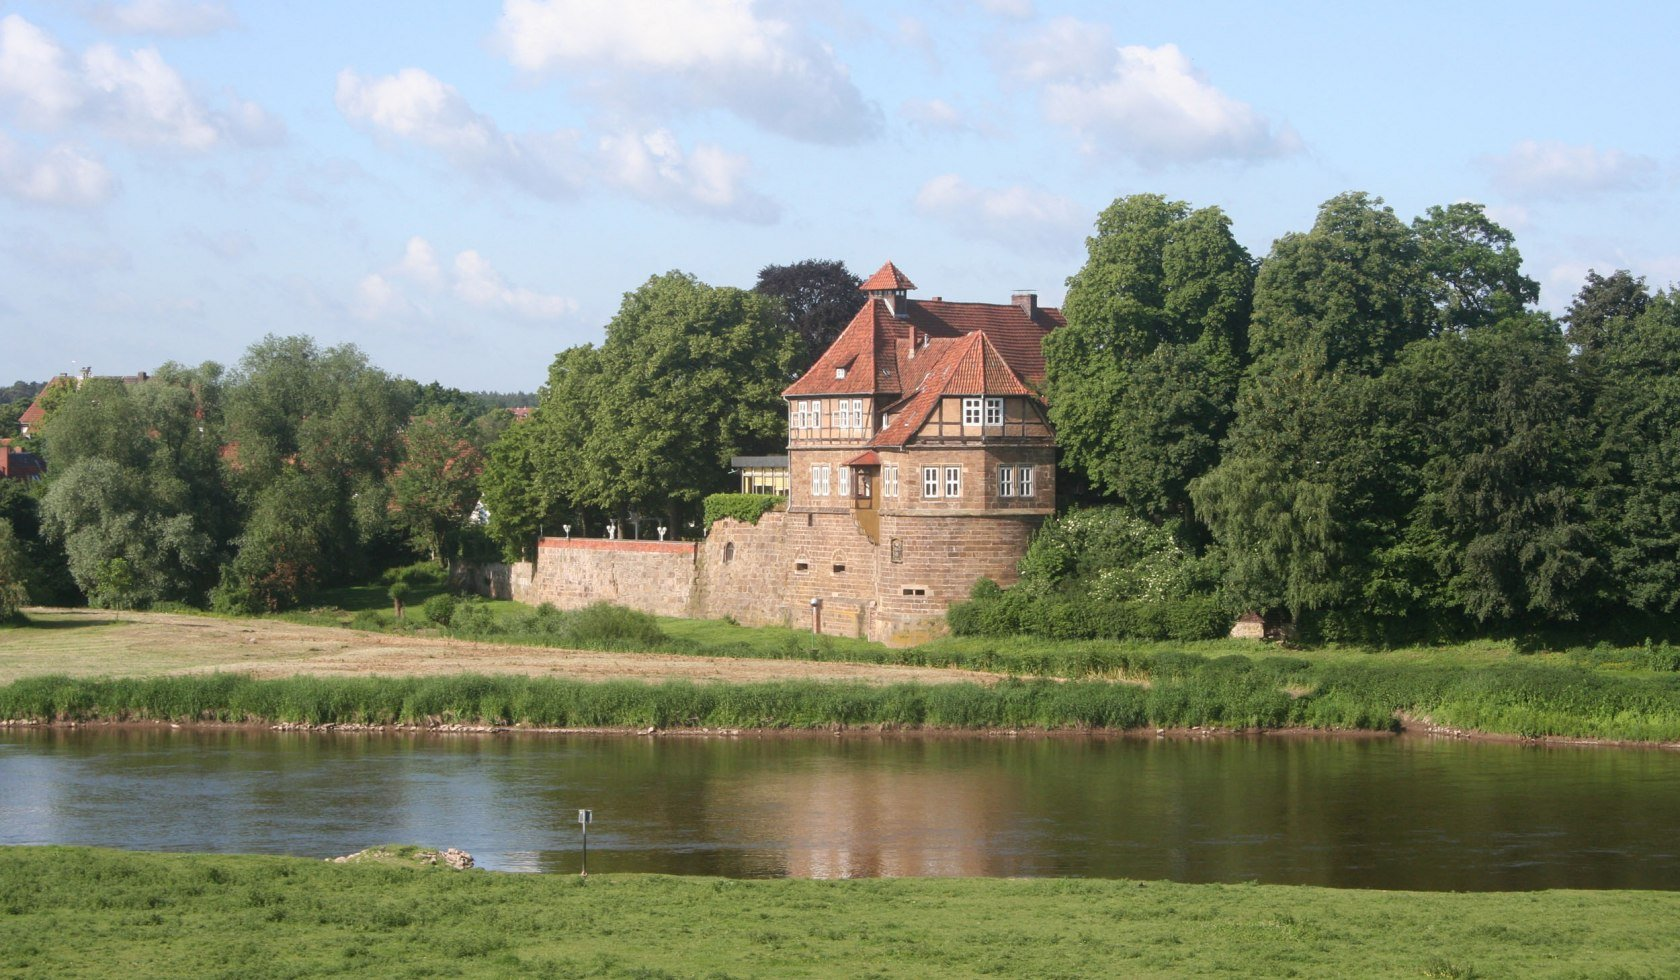 The Weserenaissance castle in Petershagen behind the river.